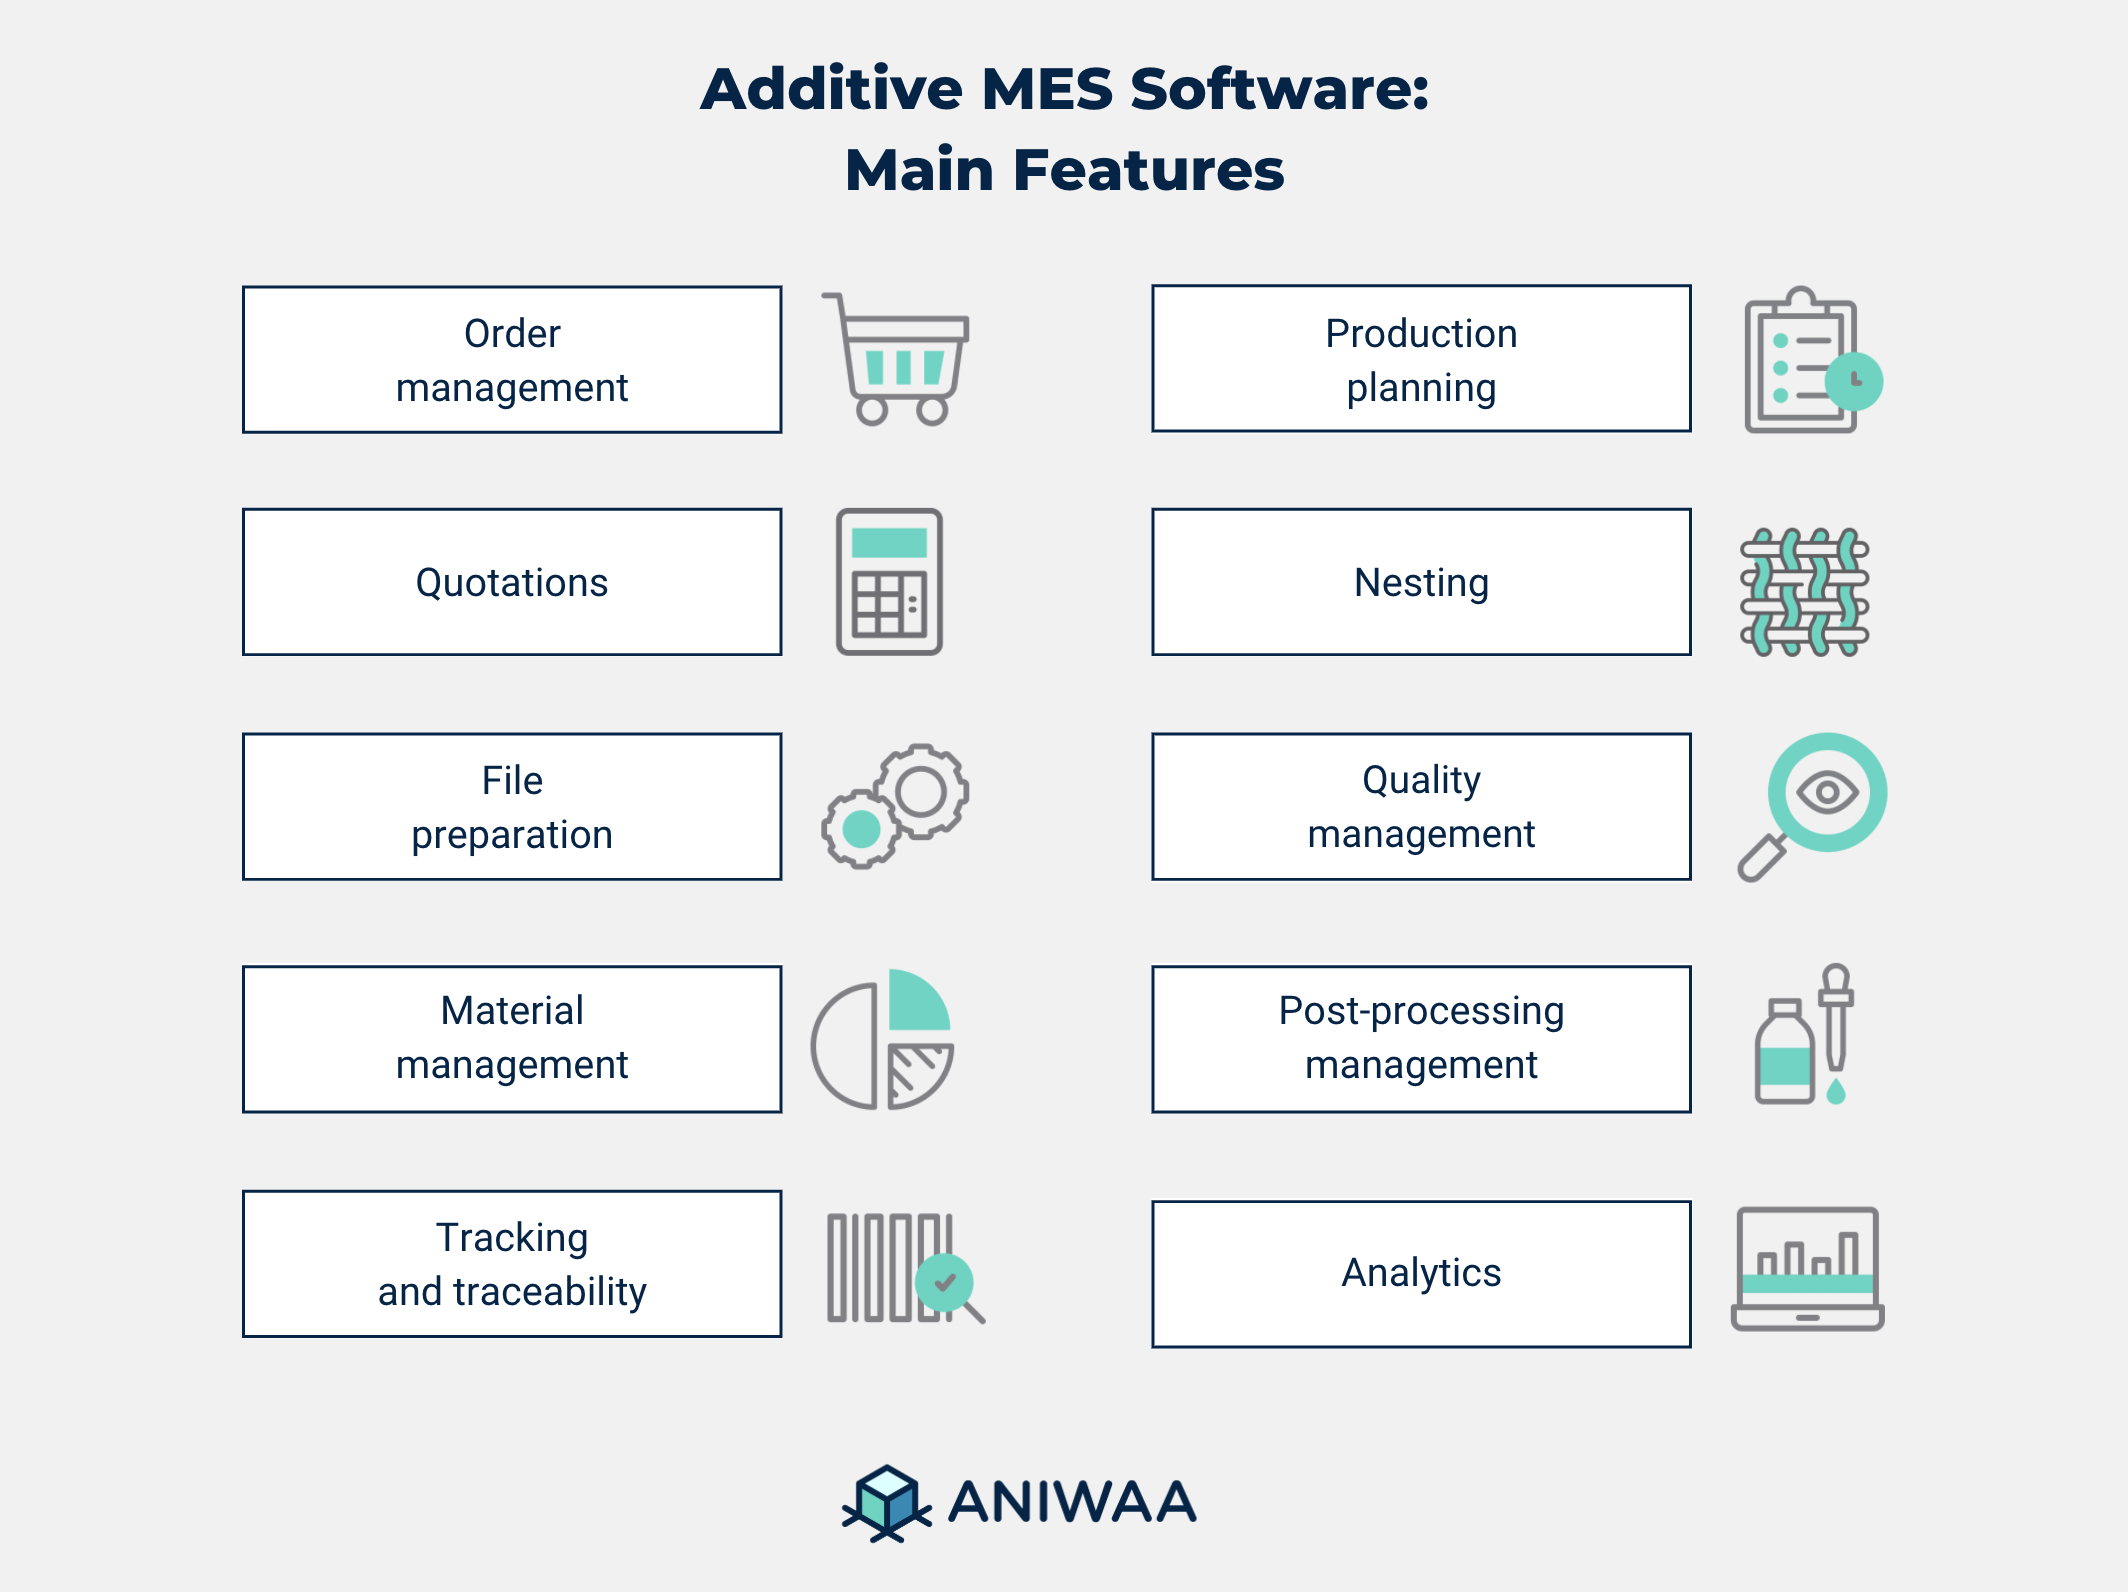 Additive MES software main features